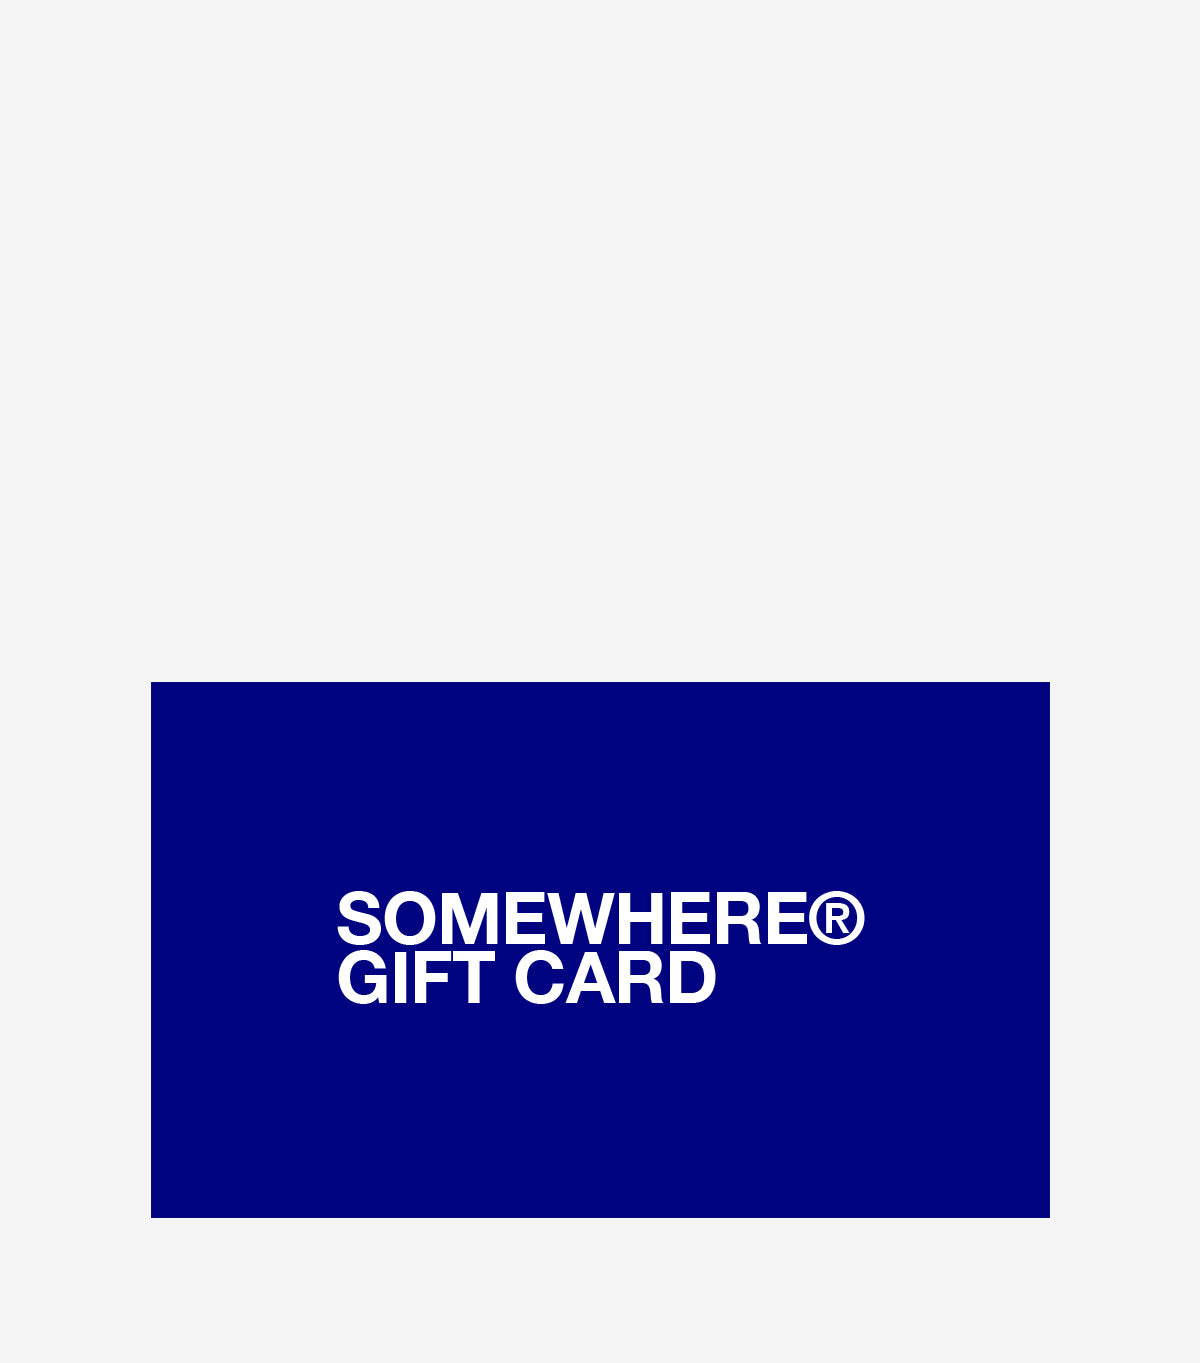 SOMEWHERE® GIFT CARD